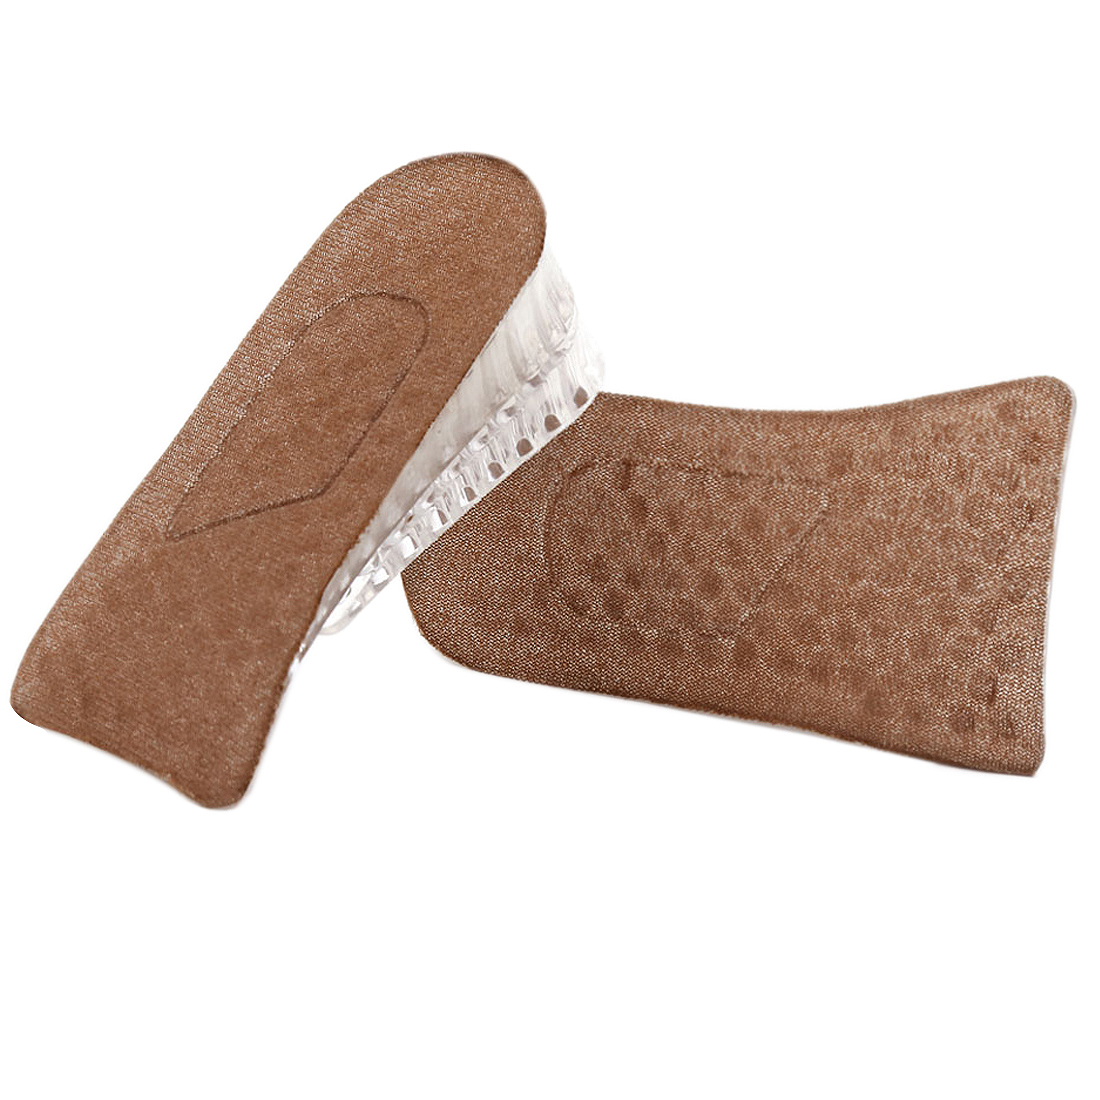 "Women Detachable Honeycomb Design Two Layers 1.5"" Height Increase Insole Brown"